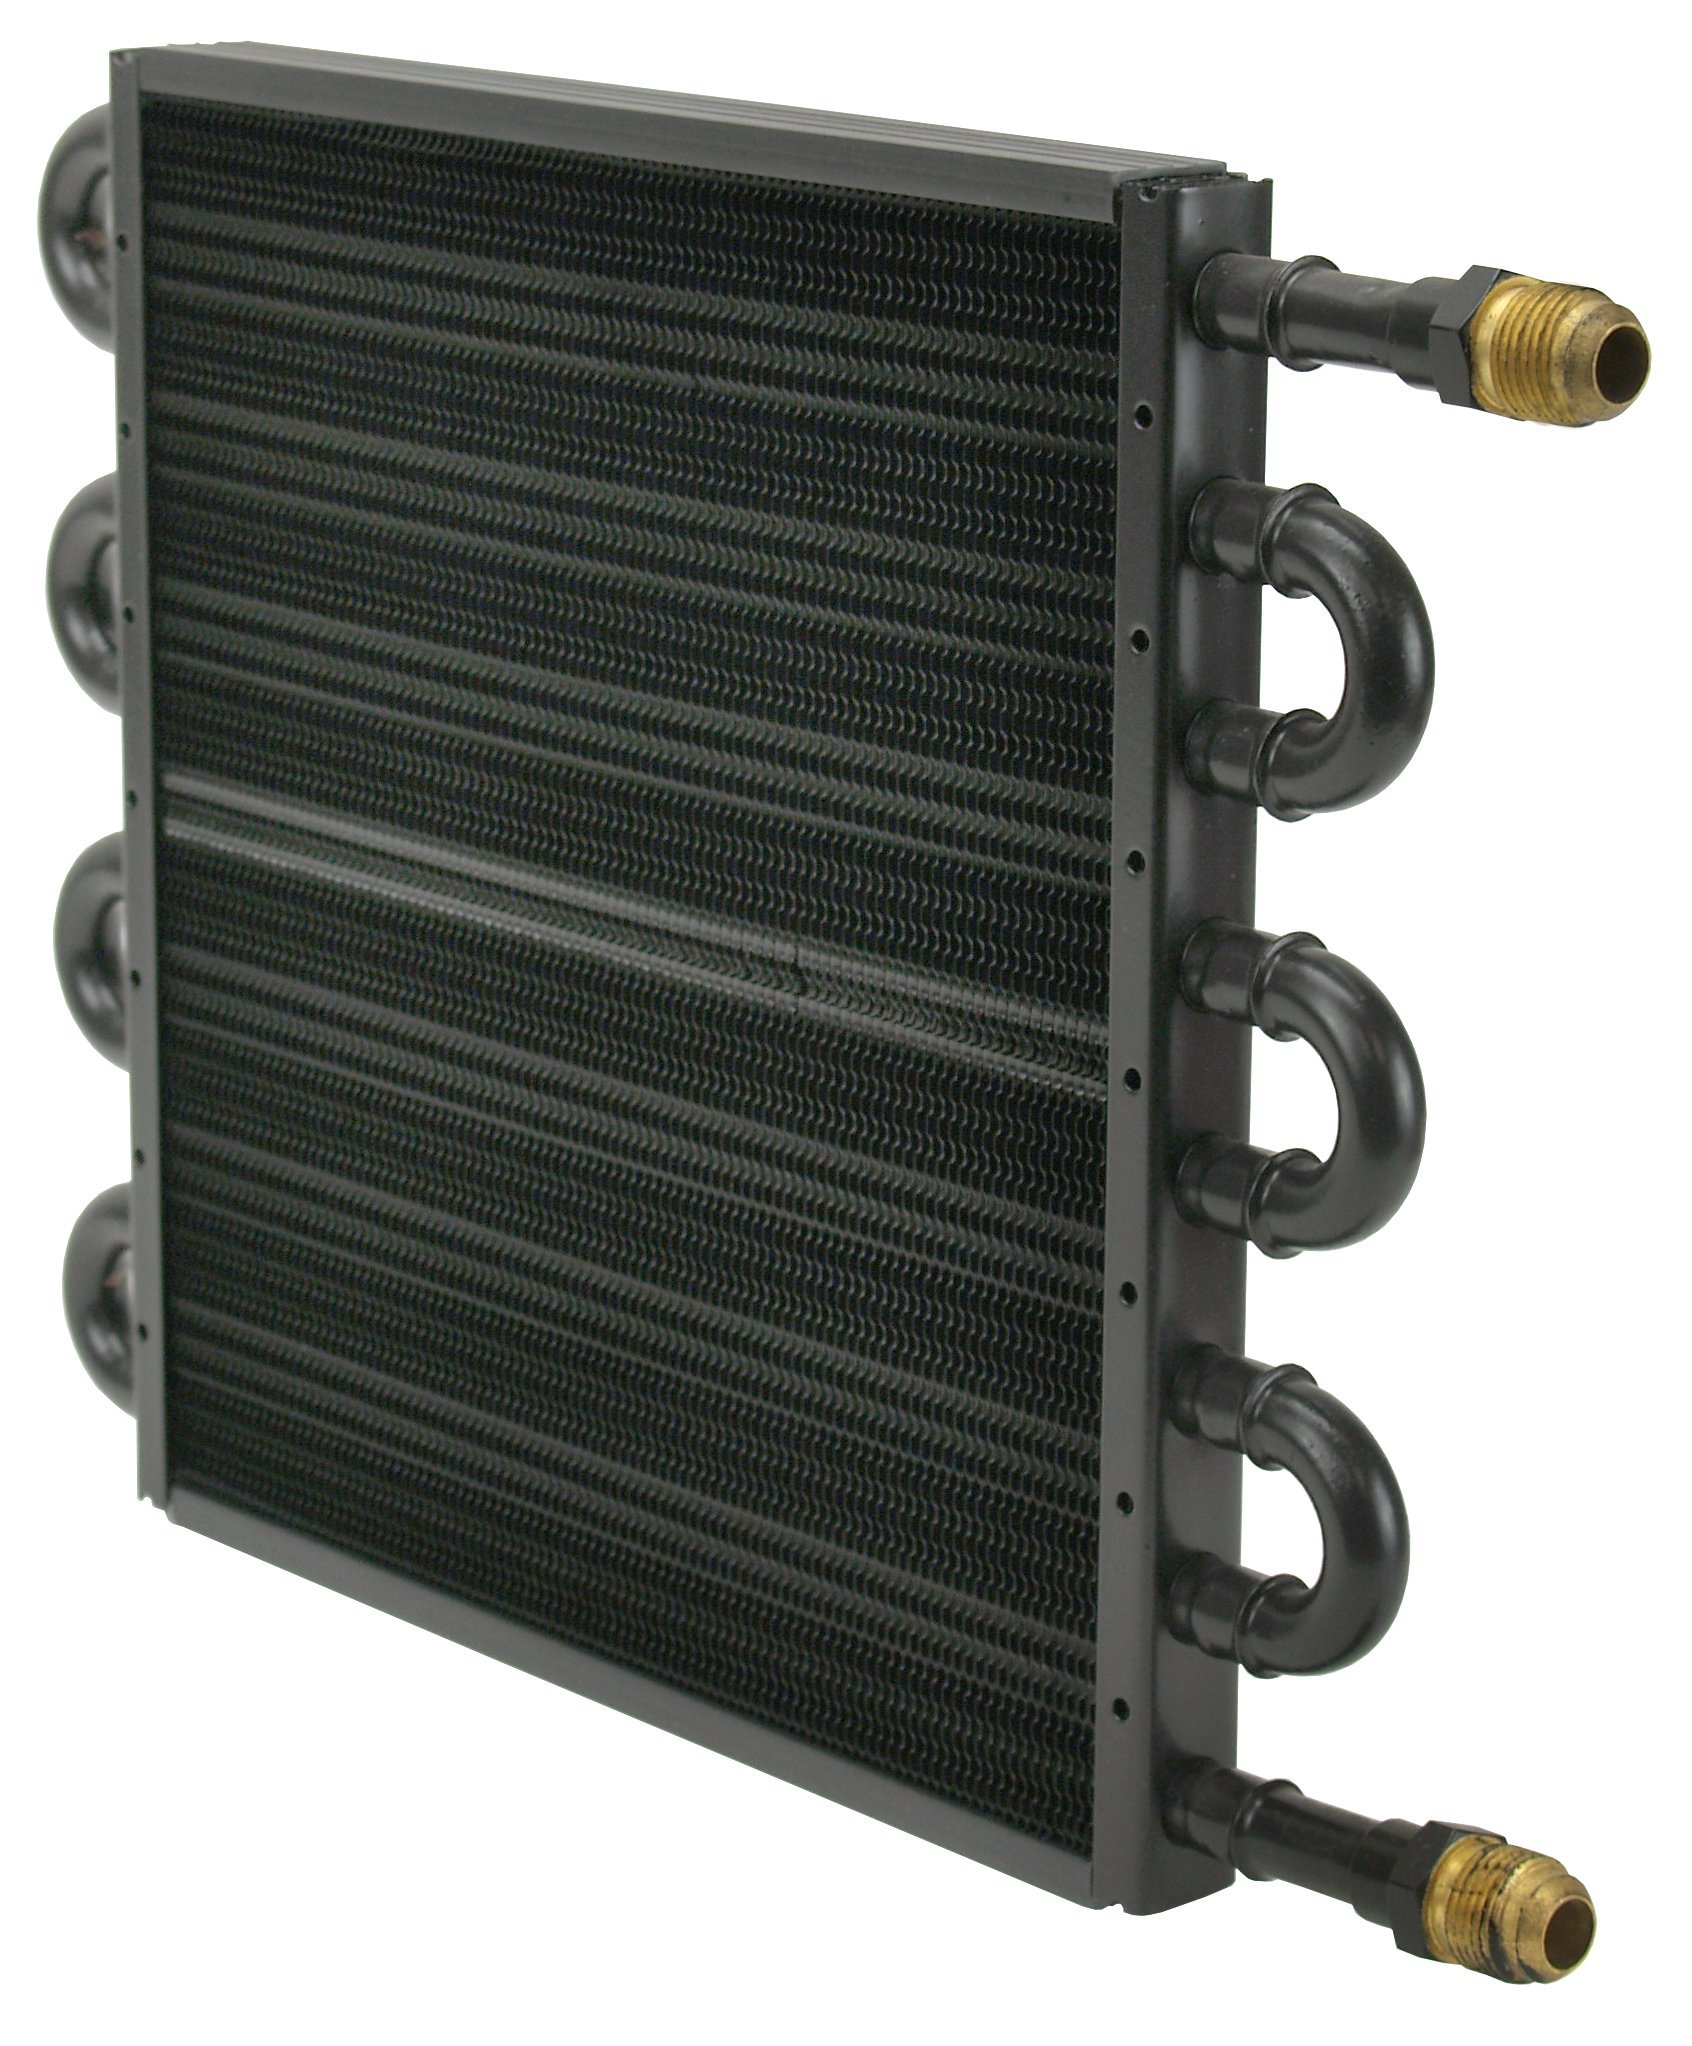 Derale 15320 Tube and Fin Cooler Core